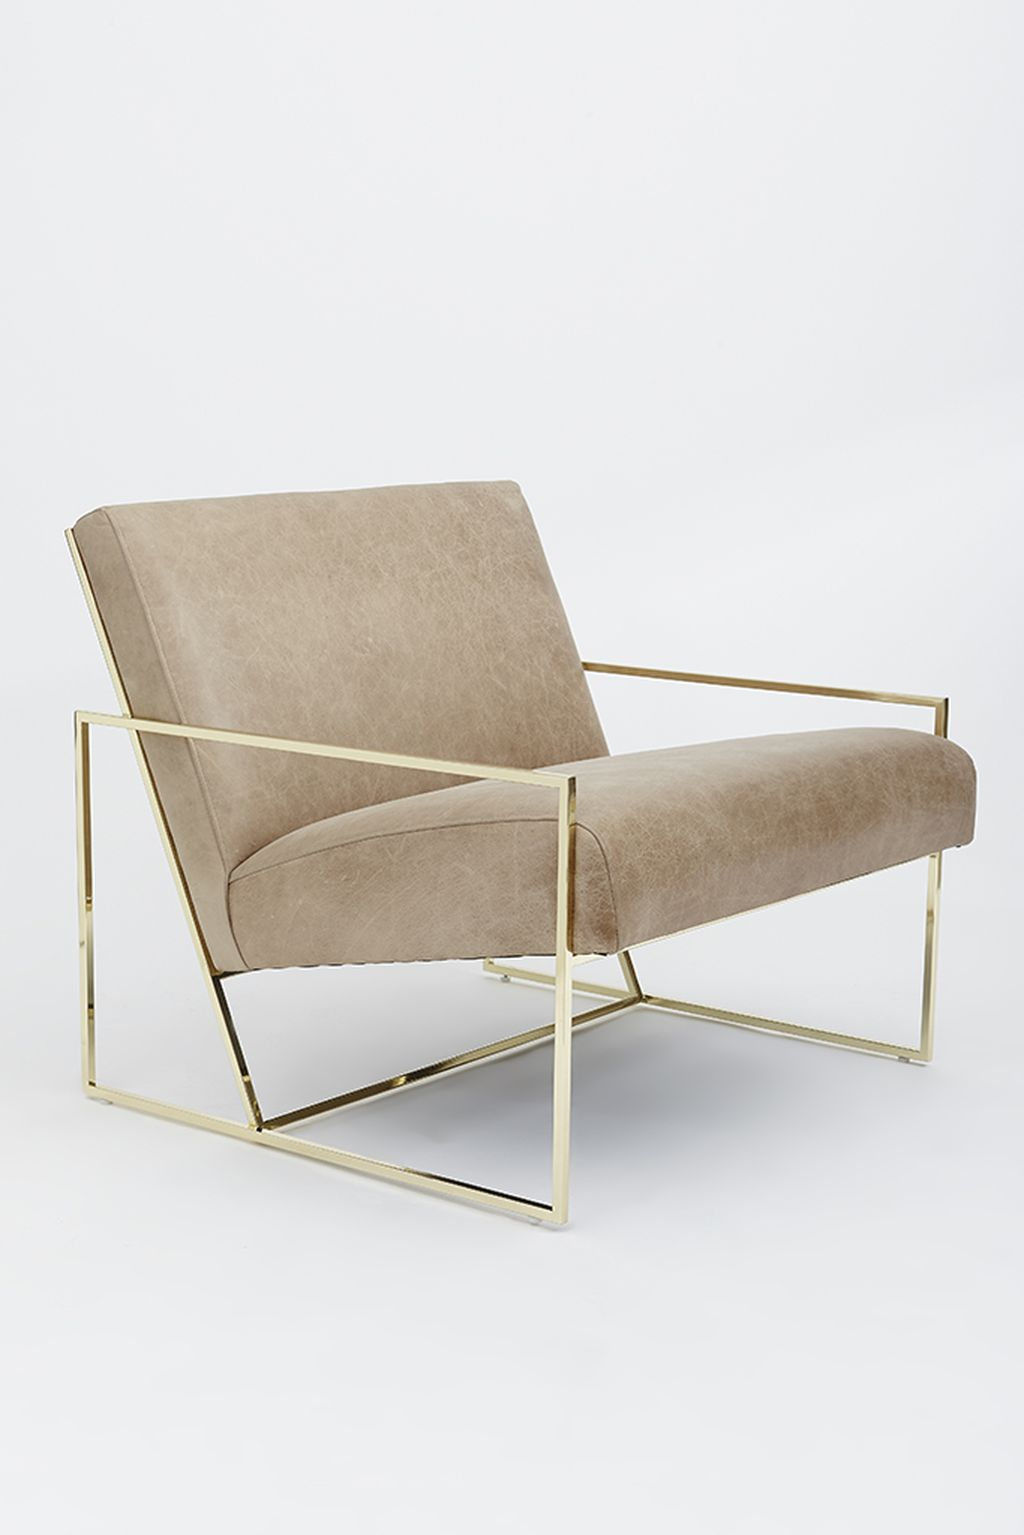 Modern Mid Century Lounge Chairs Ideas For Your Home 14